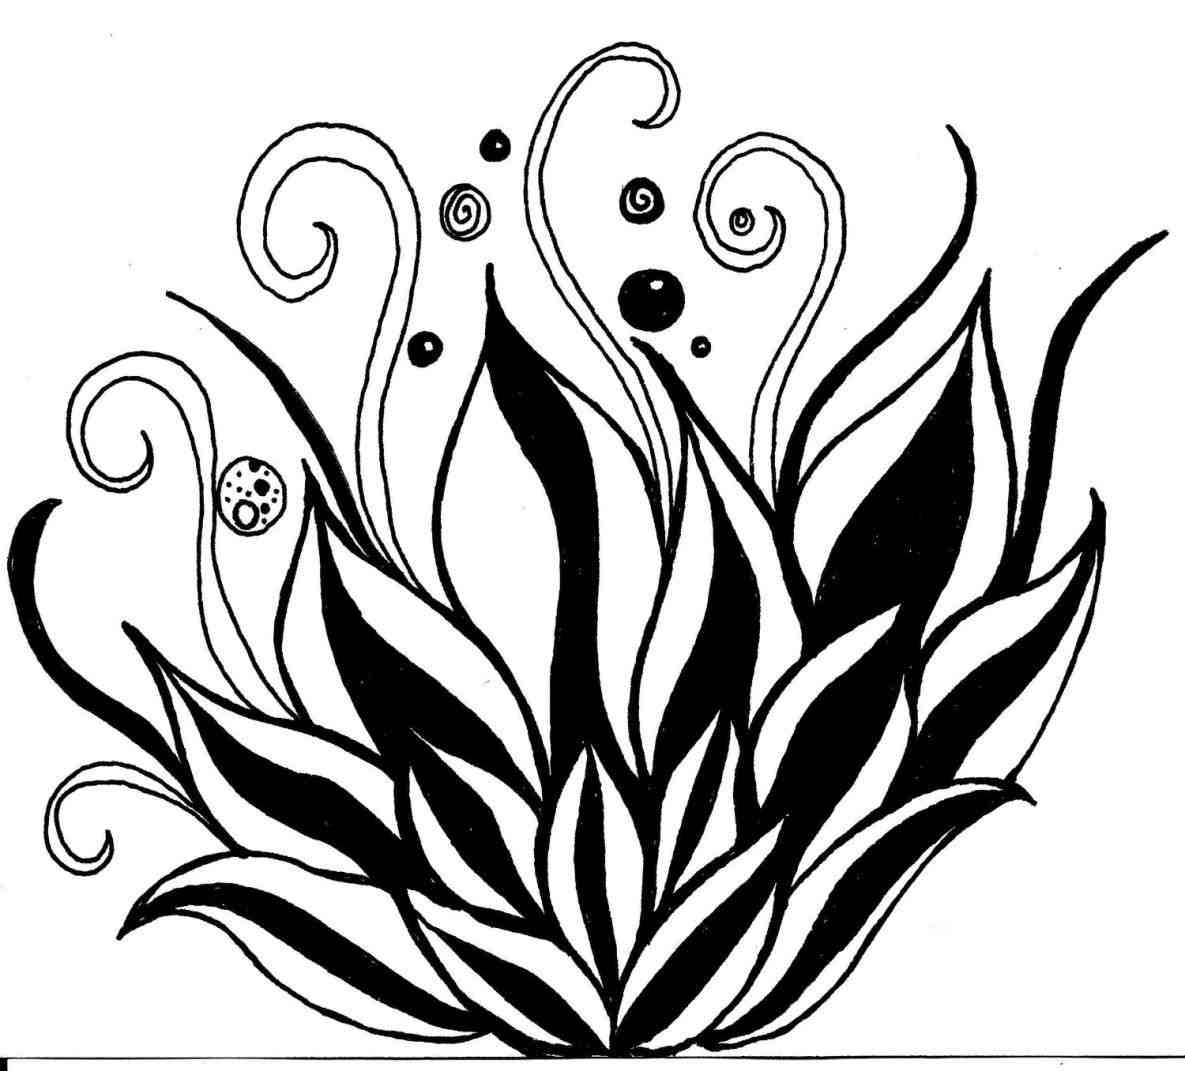 1185x1071 Bigstock Beautiful Floral Drawing Ideas On Doodle